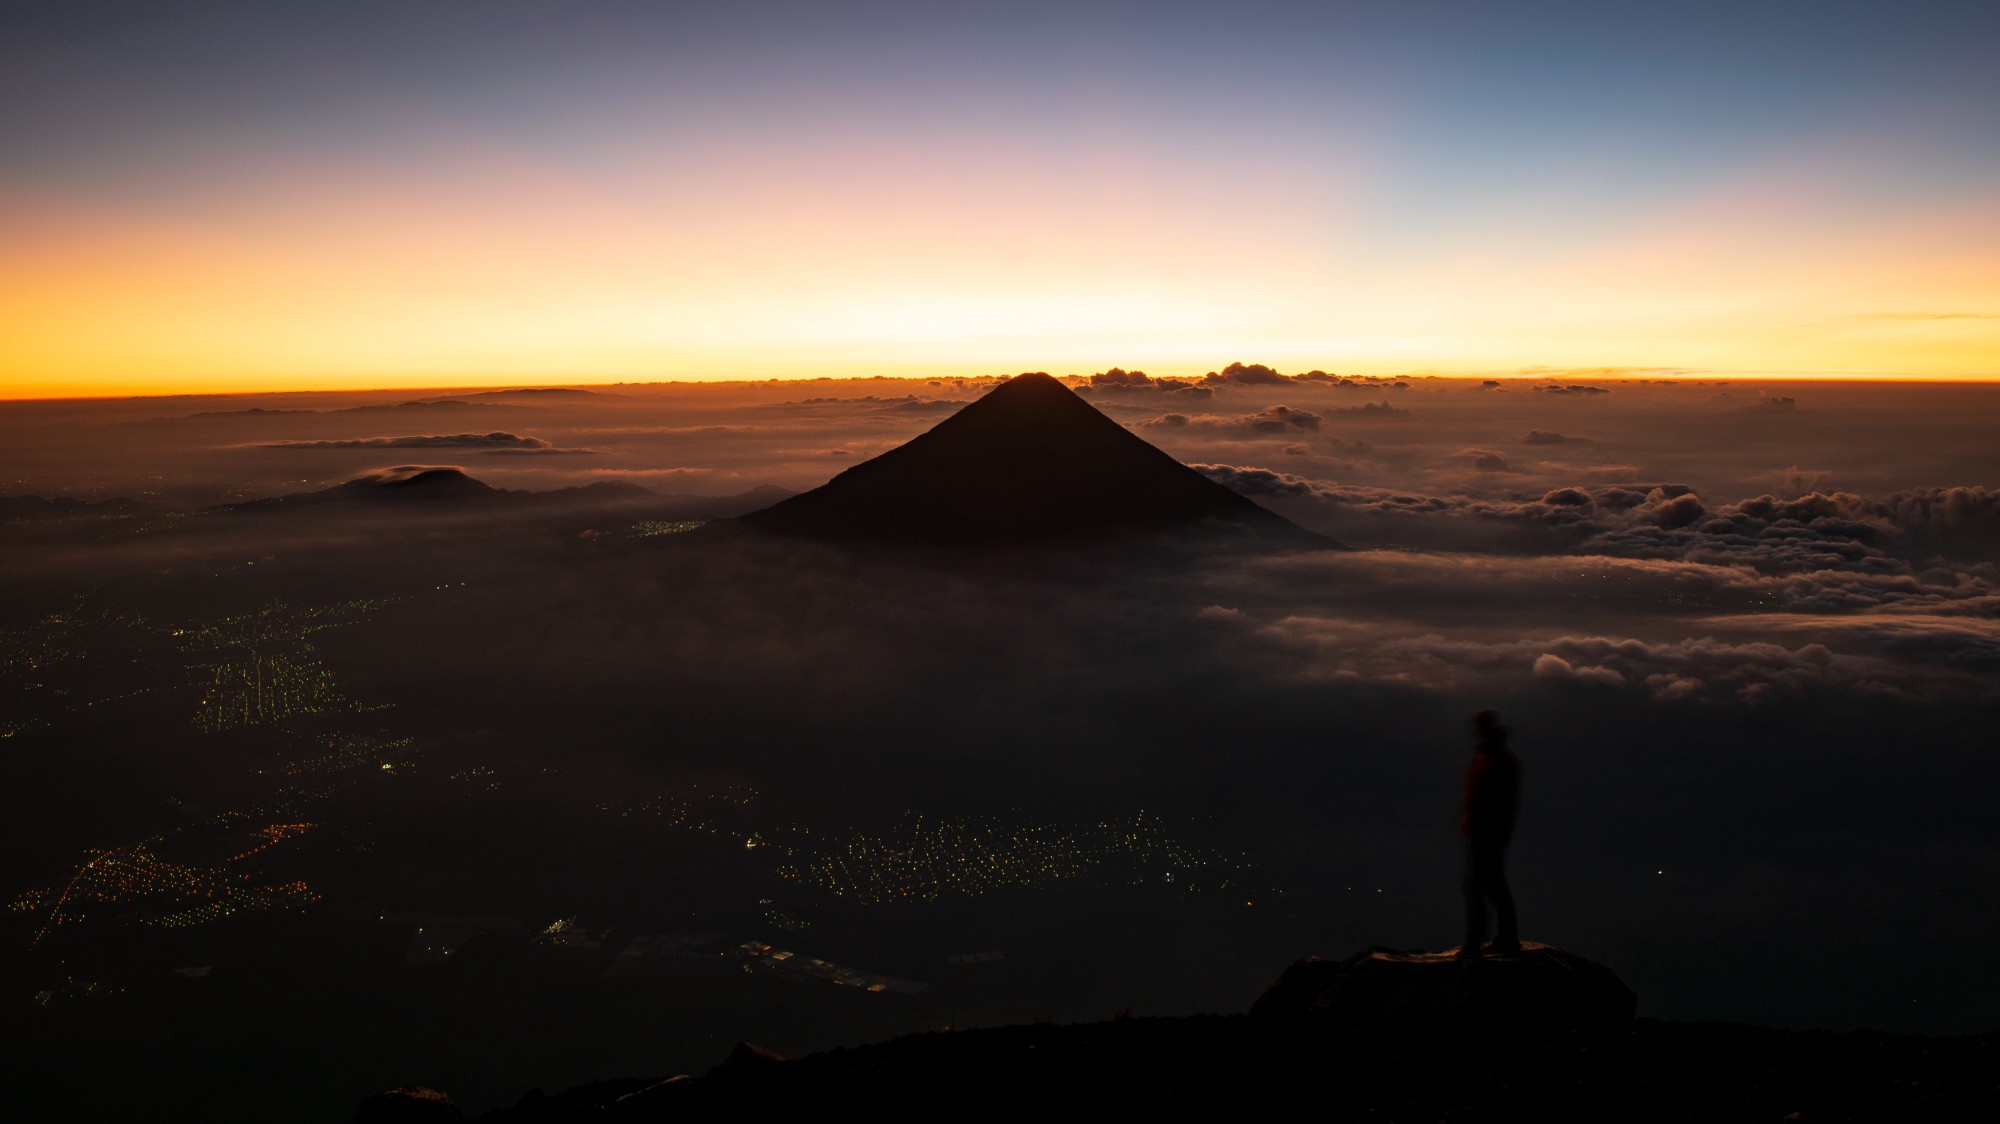 City lights glow under a mountain sunrise-daily transformation